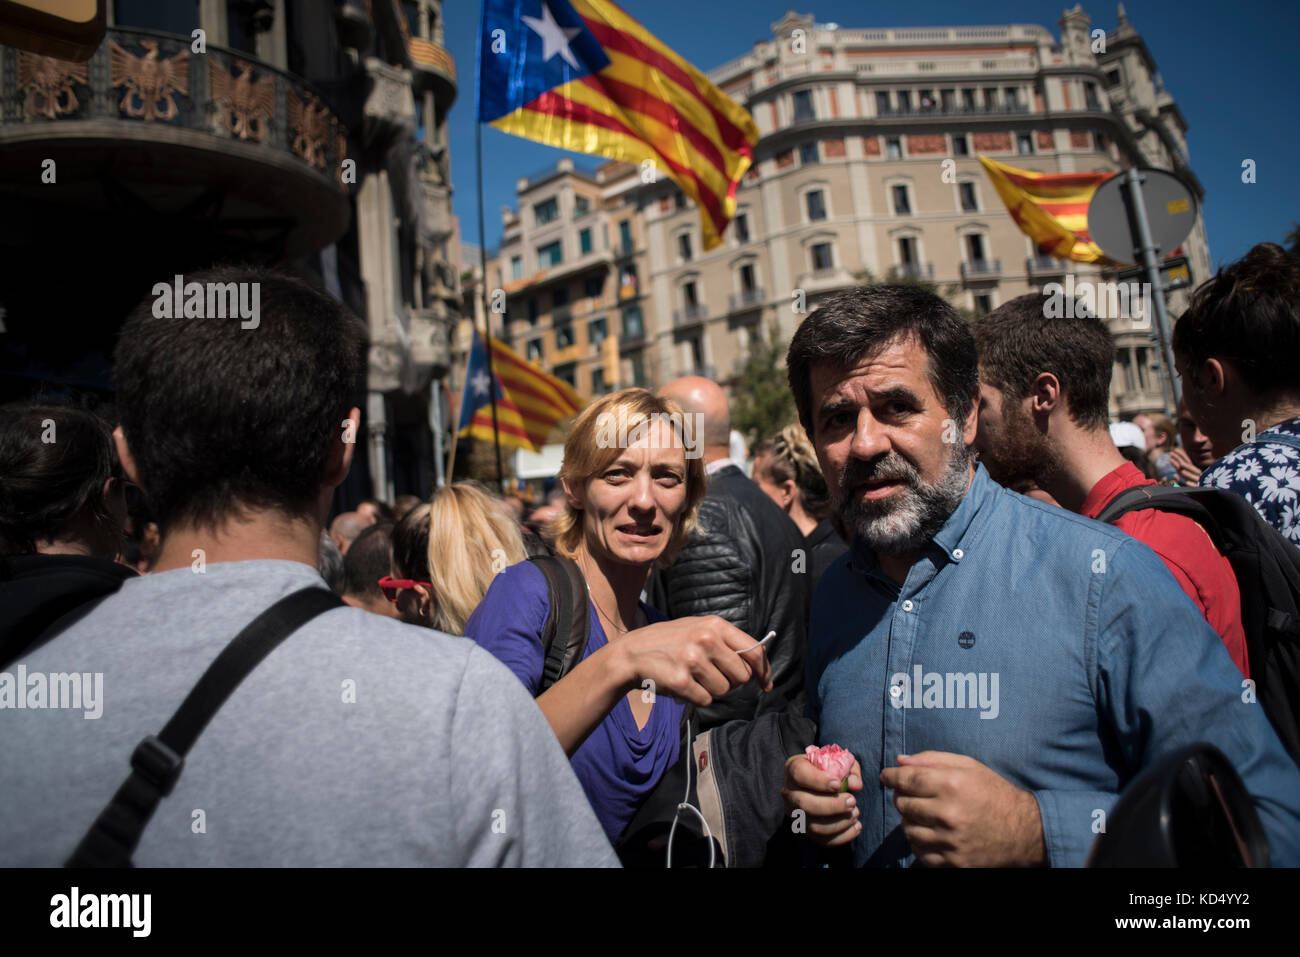 Jordi Sànchez, president of the Catalan National Assembly (ANC), attends the protest in front of the Conselleria - Stock Image